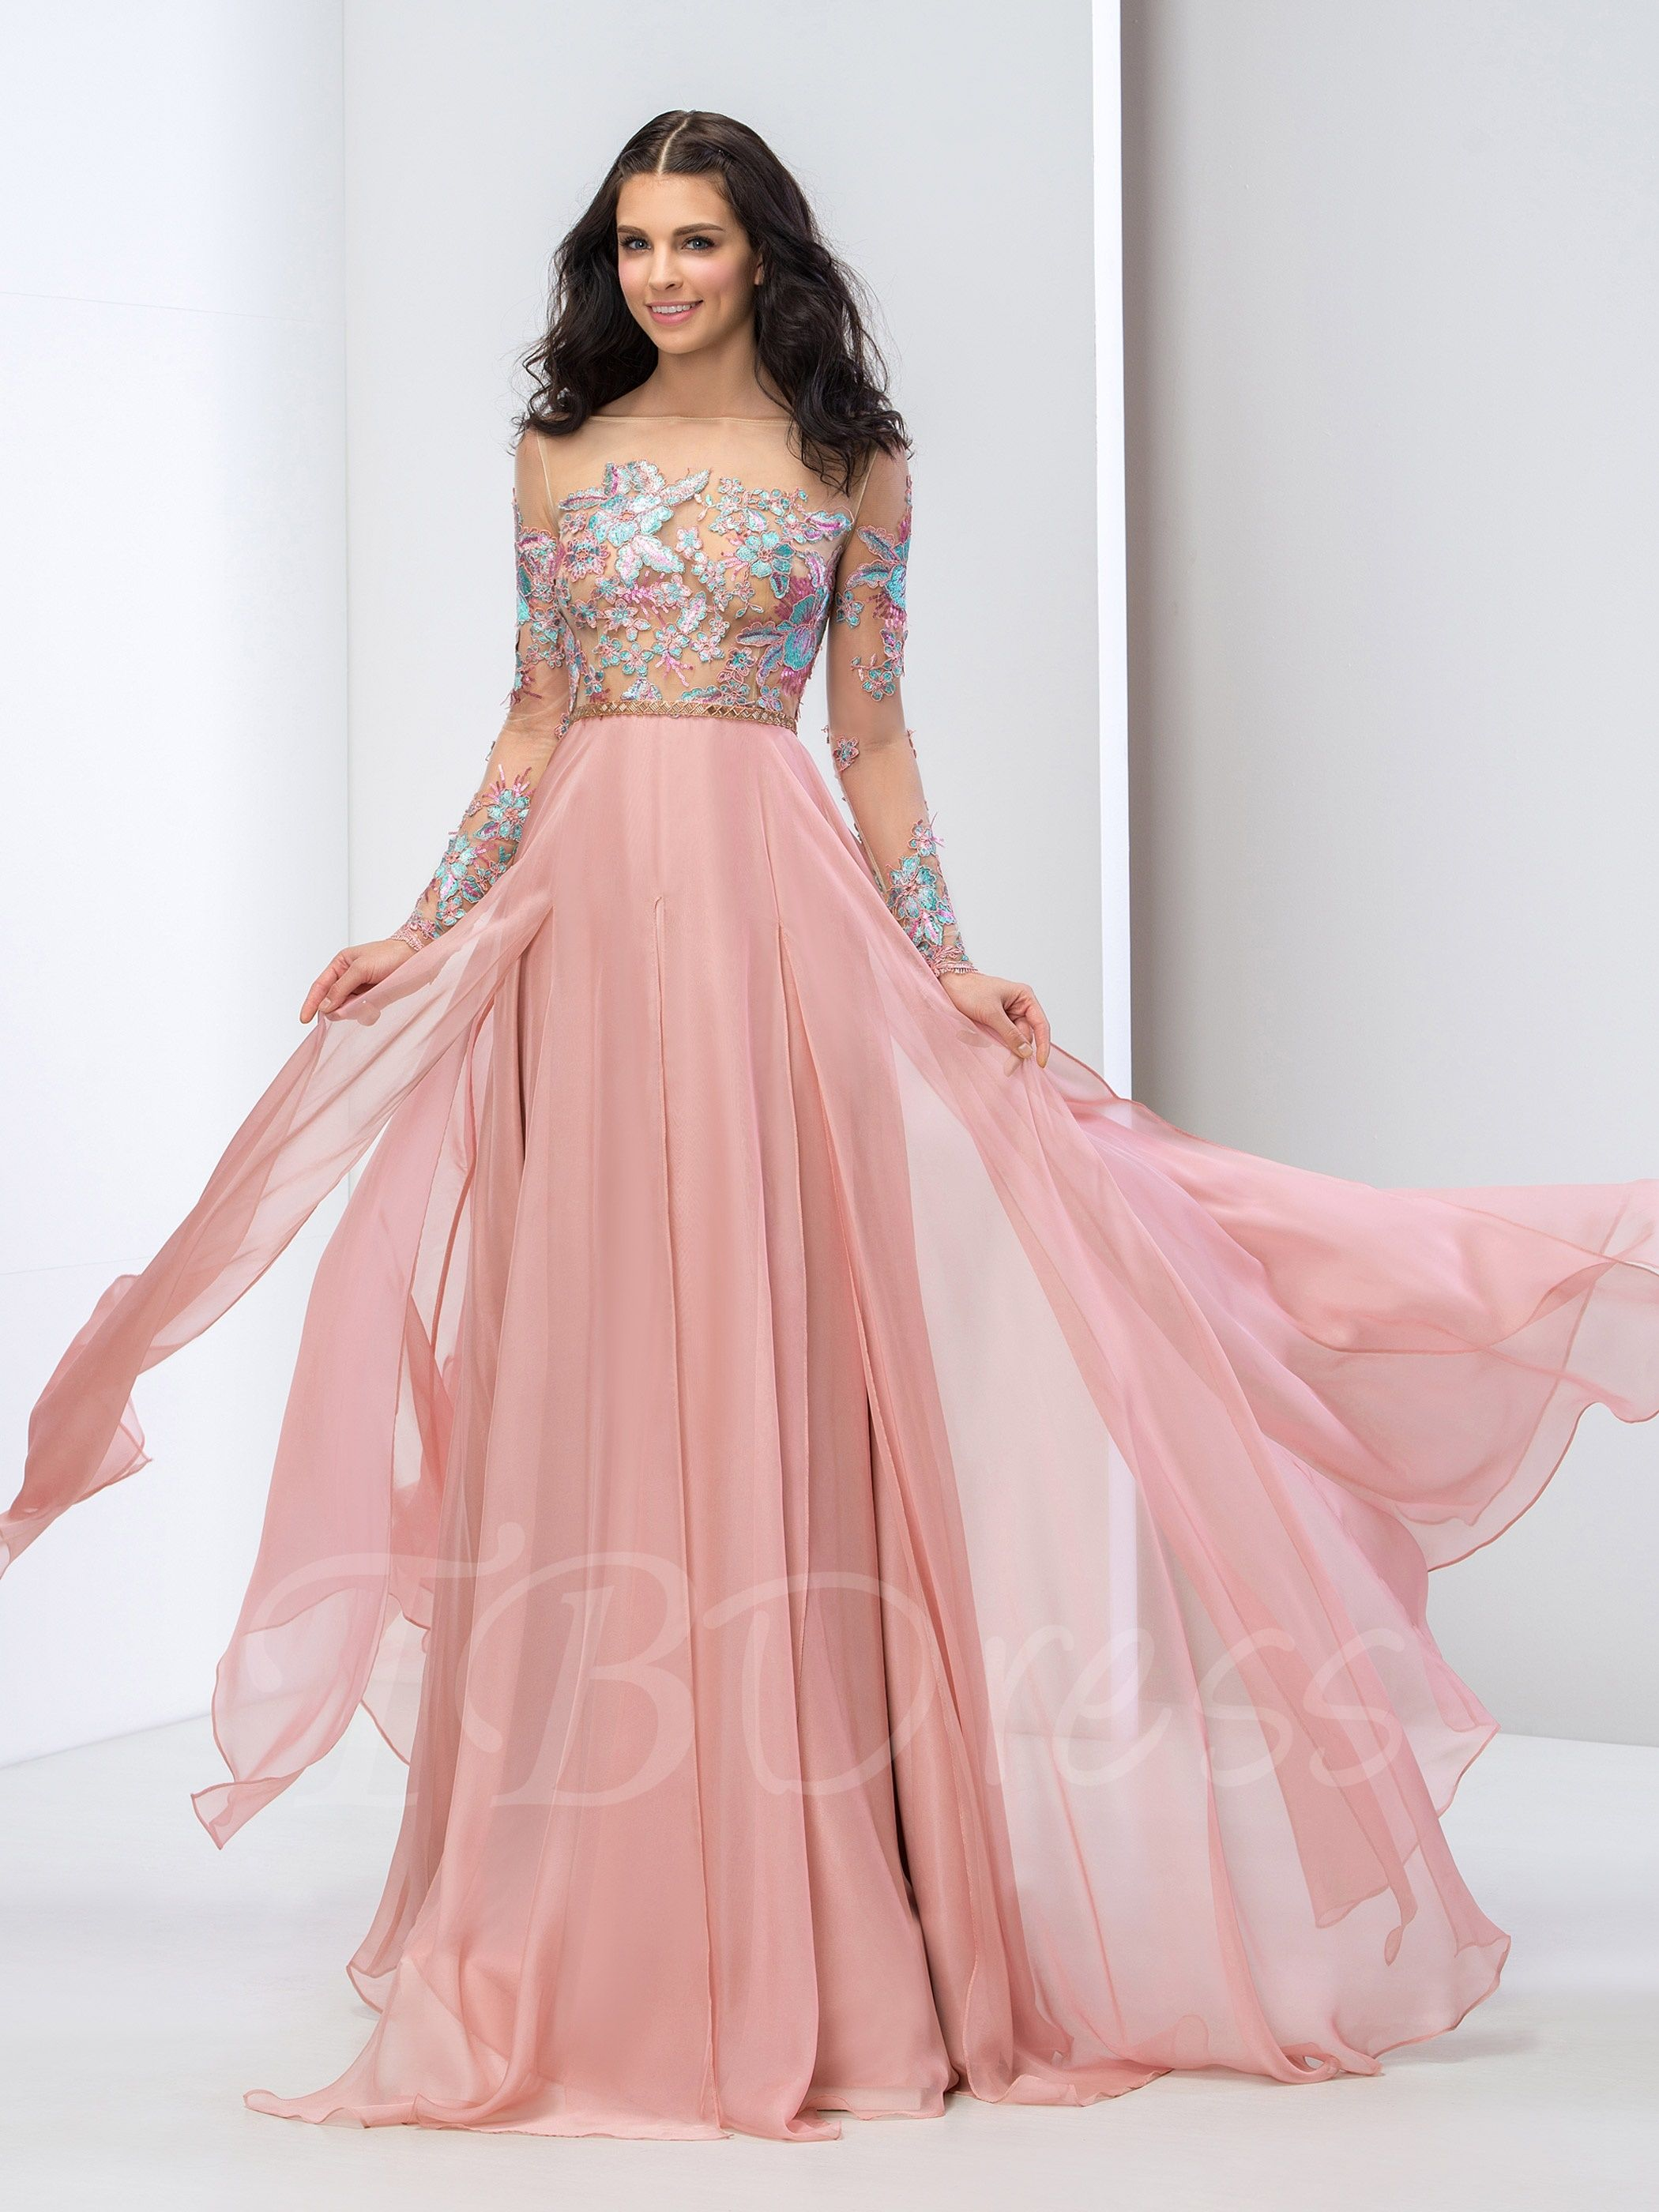 Image result for prom dresses | prom | Pinterest | Prom, Dress ideas ...